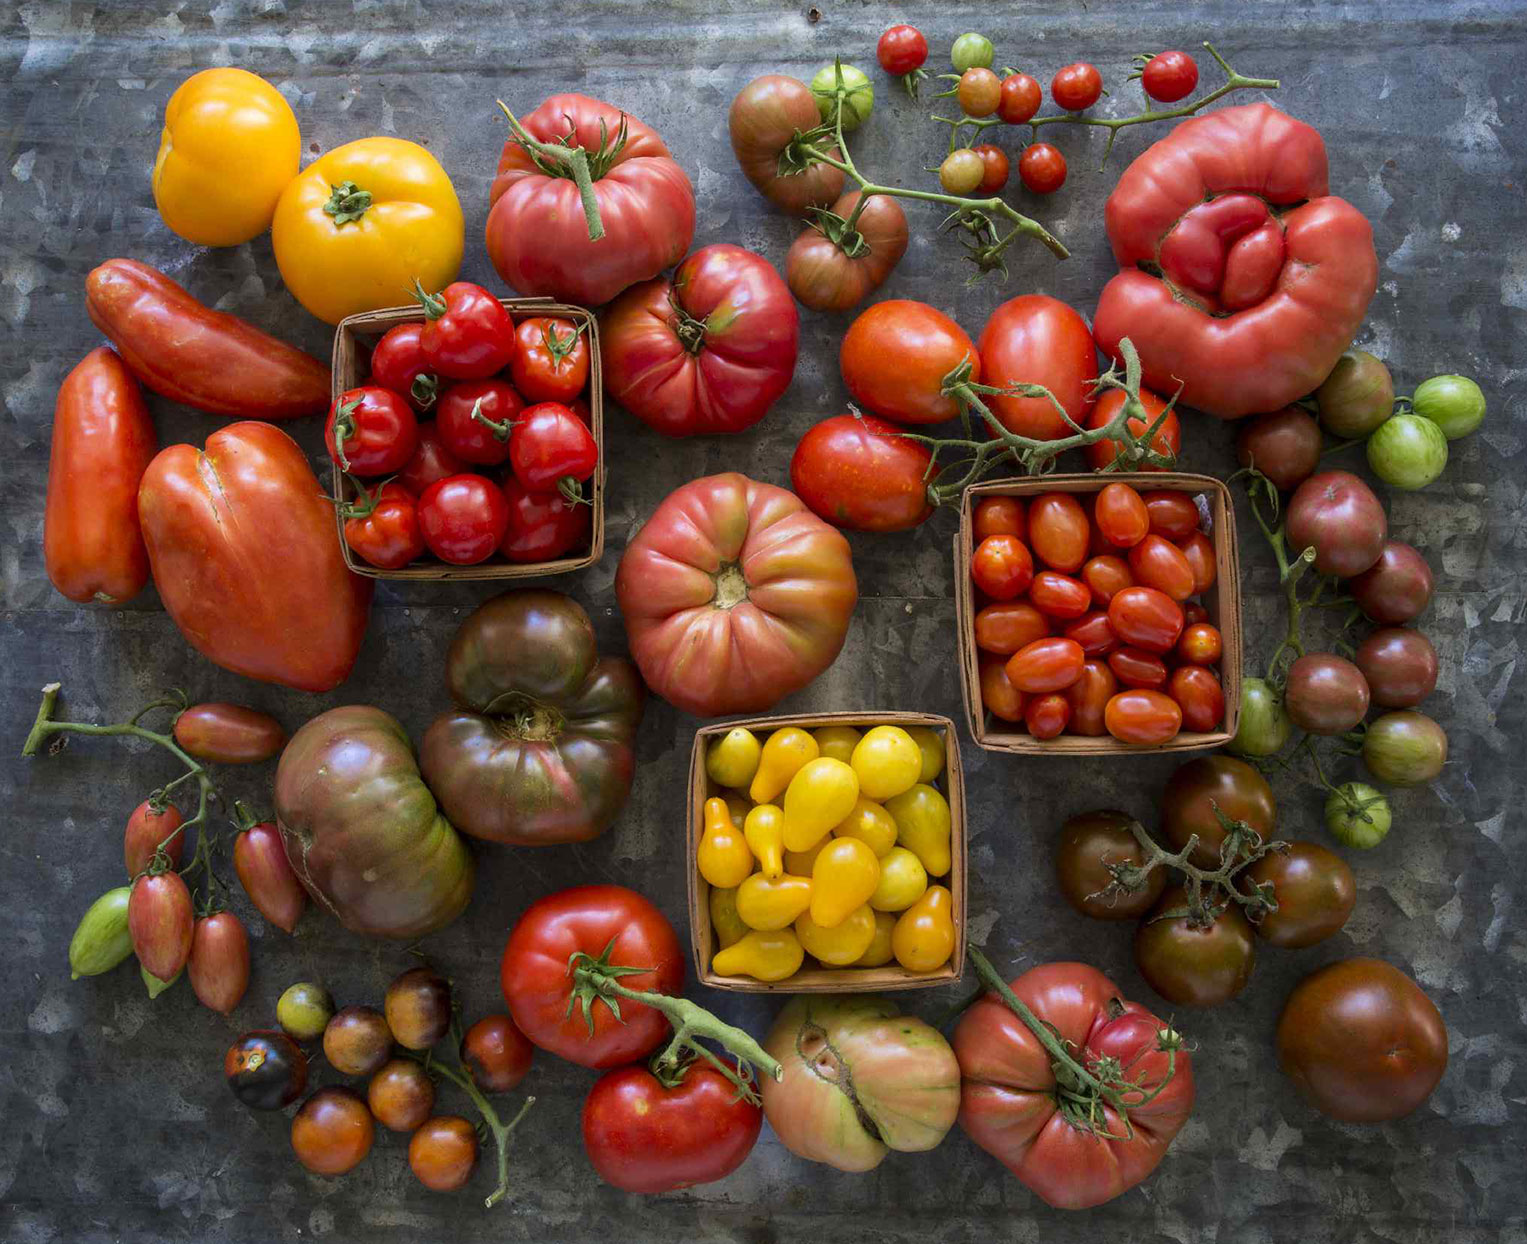 Various types of tomatoes laid out on a table